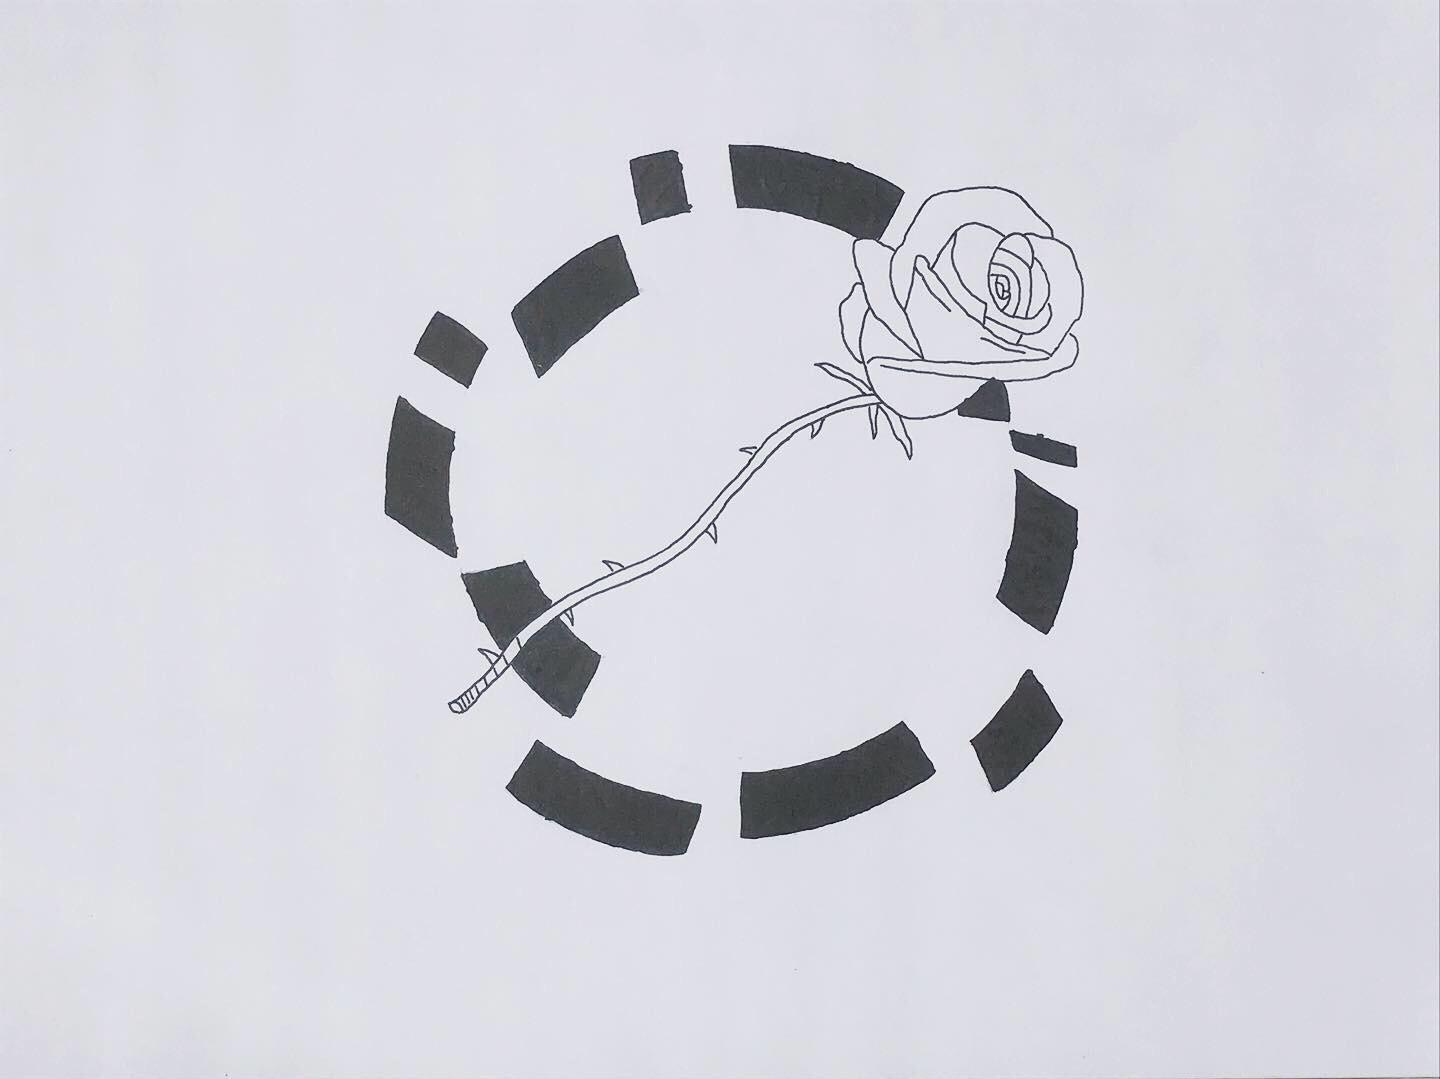 Image: Ruben Moskoviç  The blocks and lines express circle lines which have been broken by the rose which expresses love, caring, equality (especially gender equality).